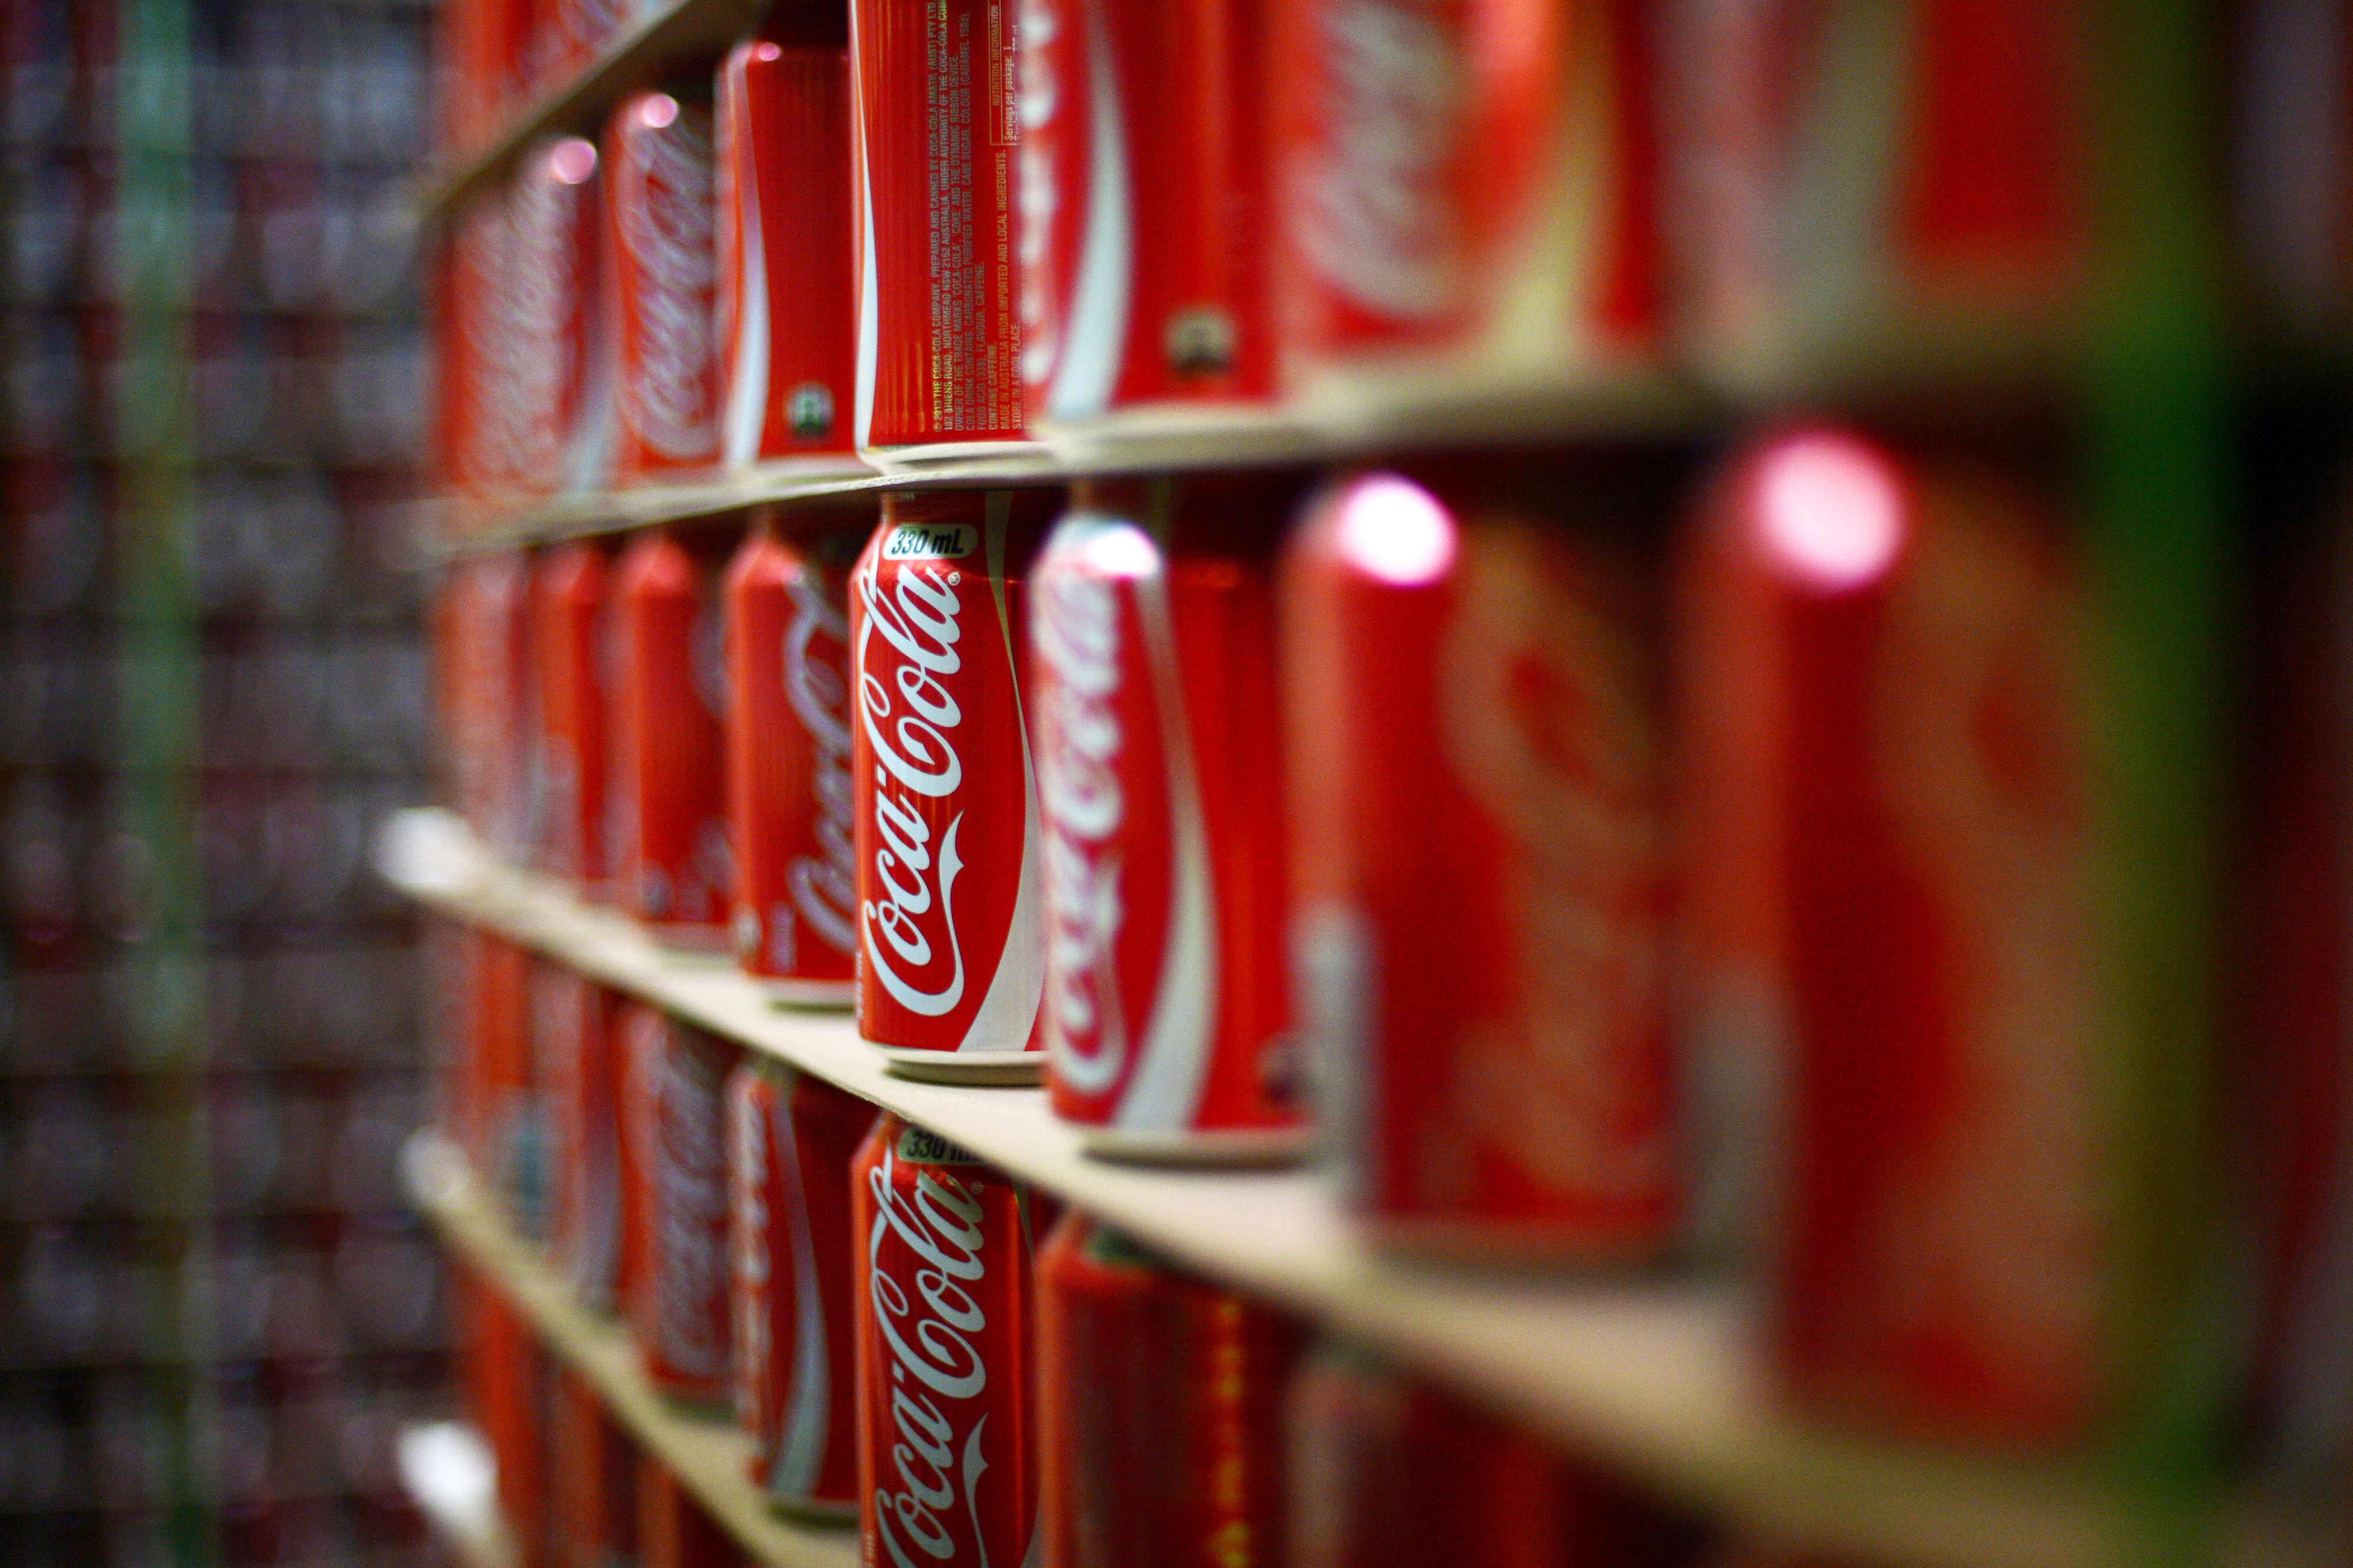 Coca-Cola cans are stacked at a production facility in Melbourne, Australia on Feb. 16, 2016.